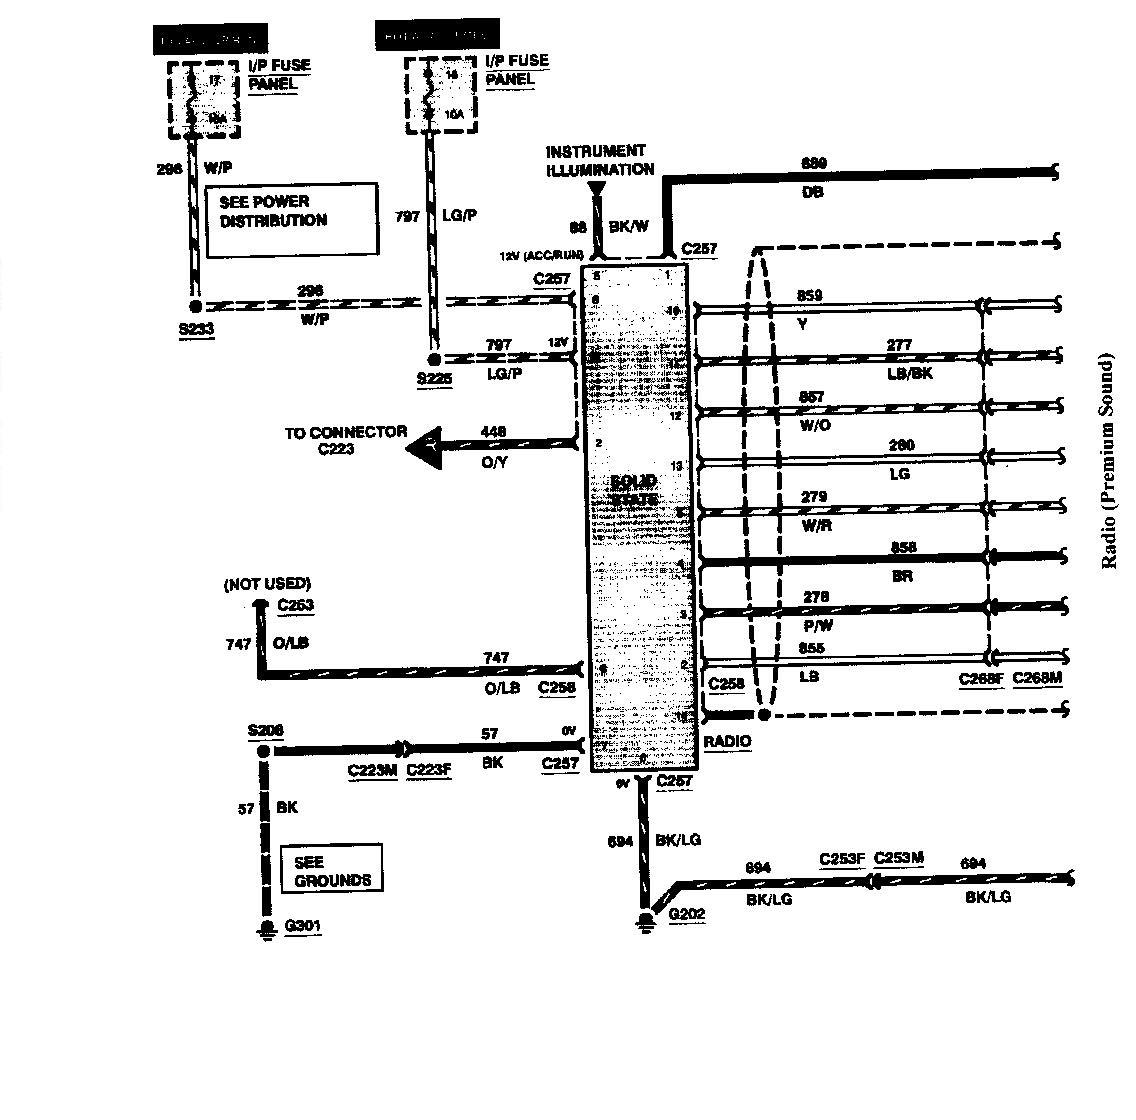 hight resolution of 95 mark 8 jbl wiring diagram needed lincolns online message forum dodge stereo wiring diagram 95 lincoln stereo wiring diagram